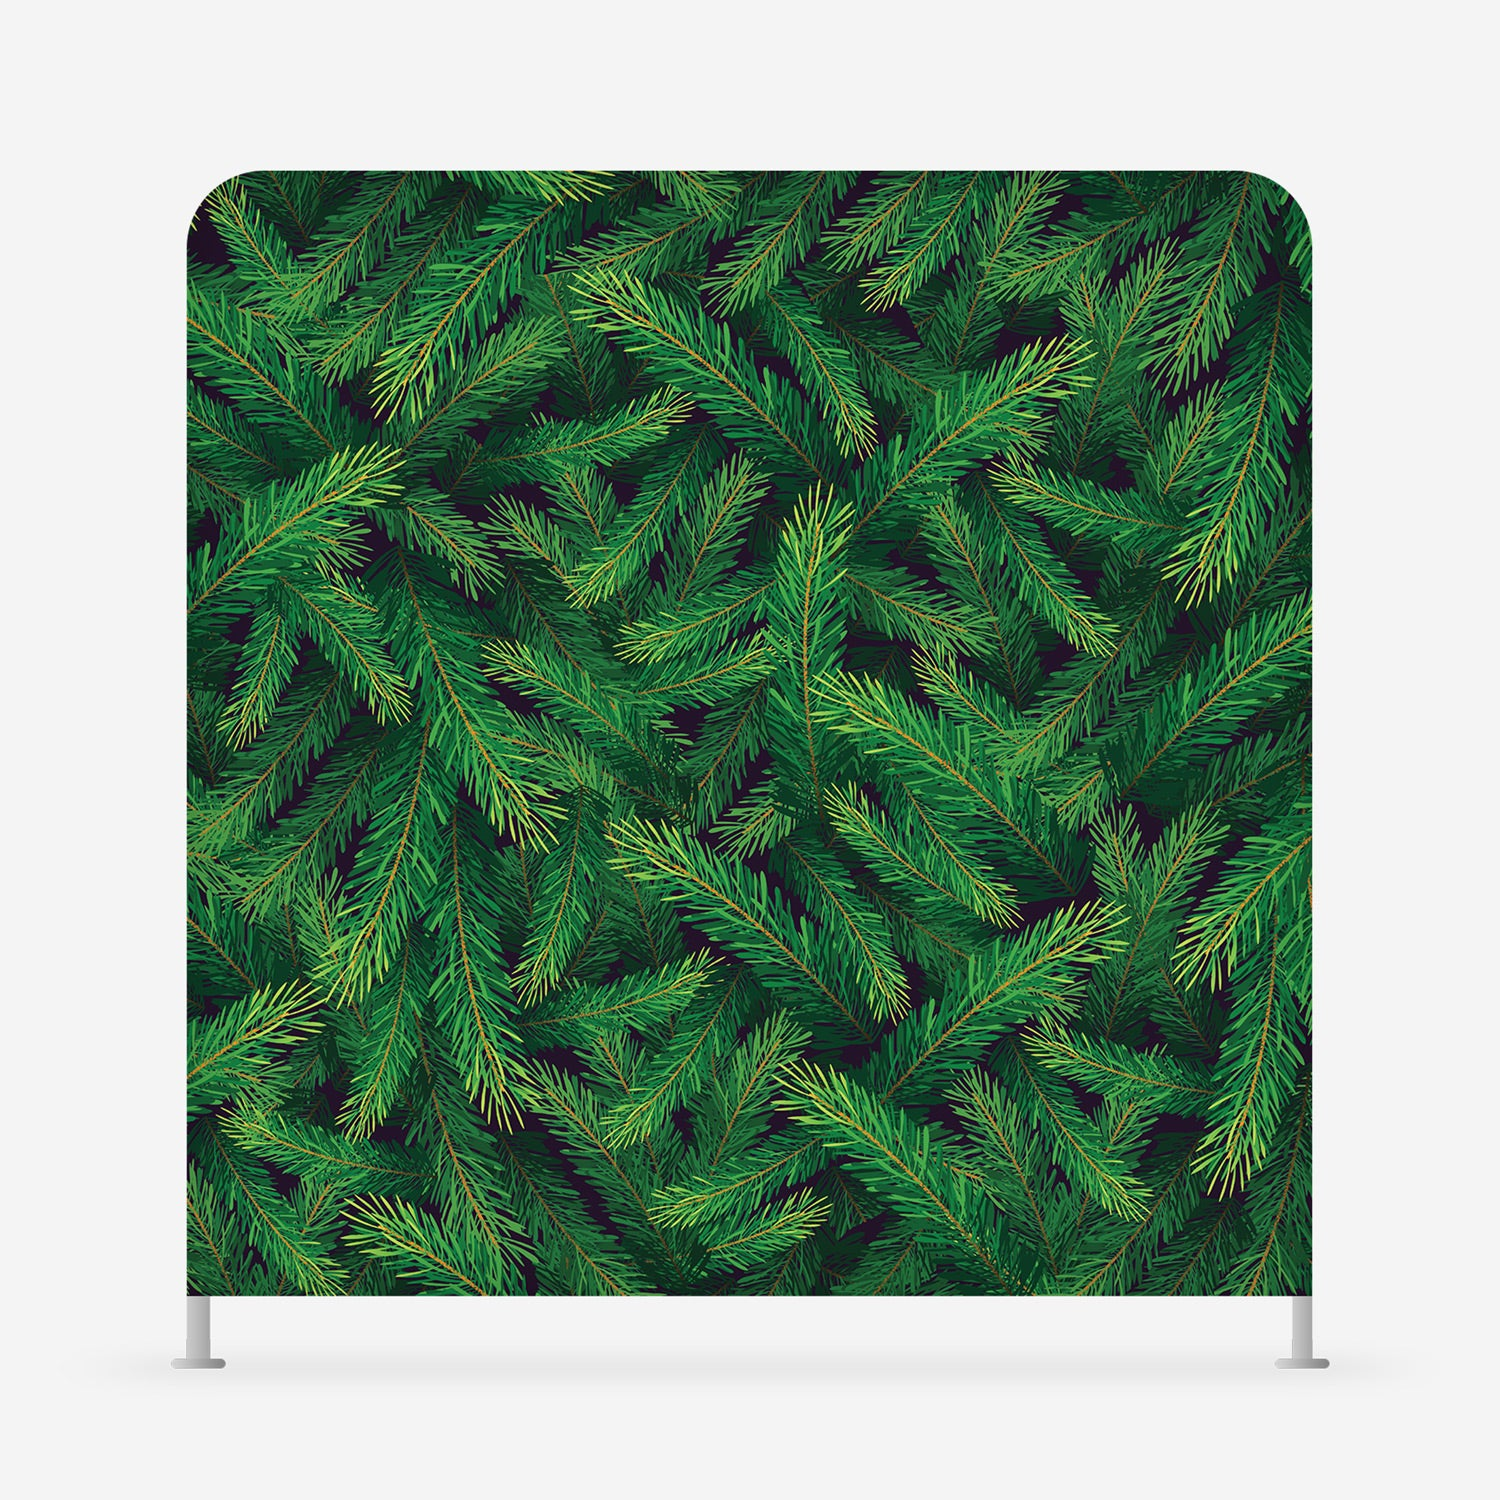 Pine - 8ft x 8ft backdrop